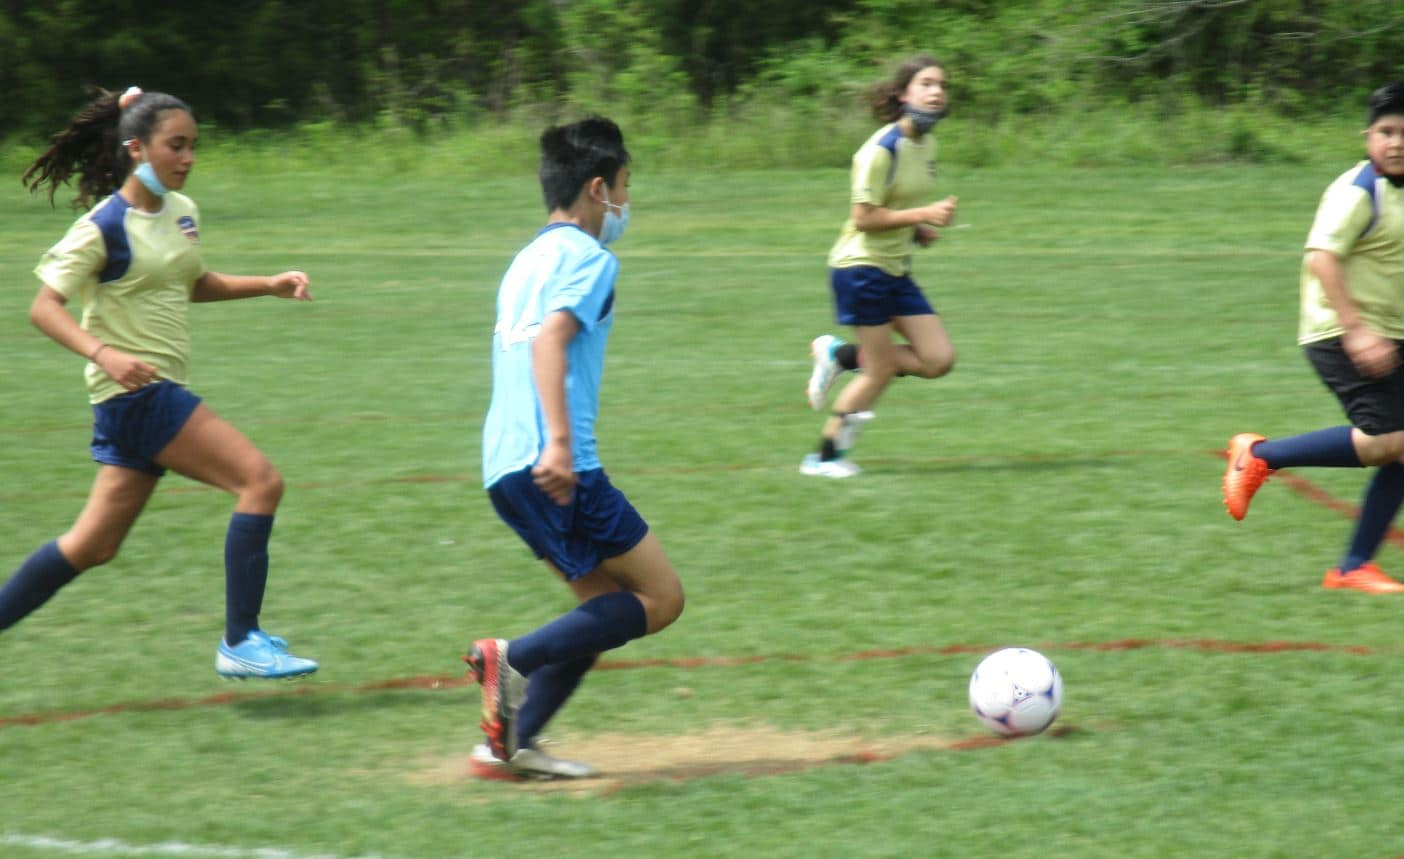 Left mid dribbling the ball down the line.